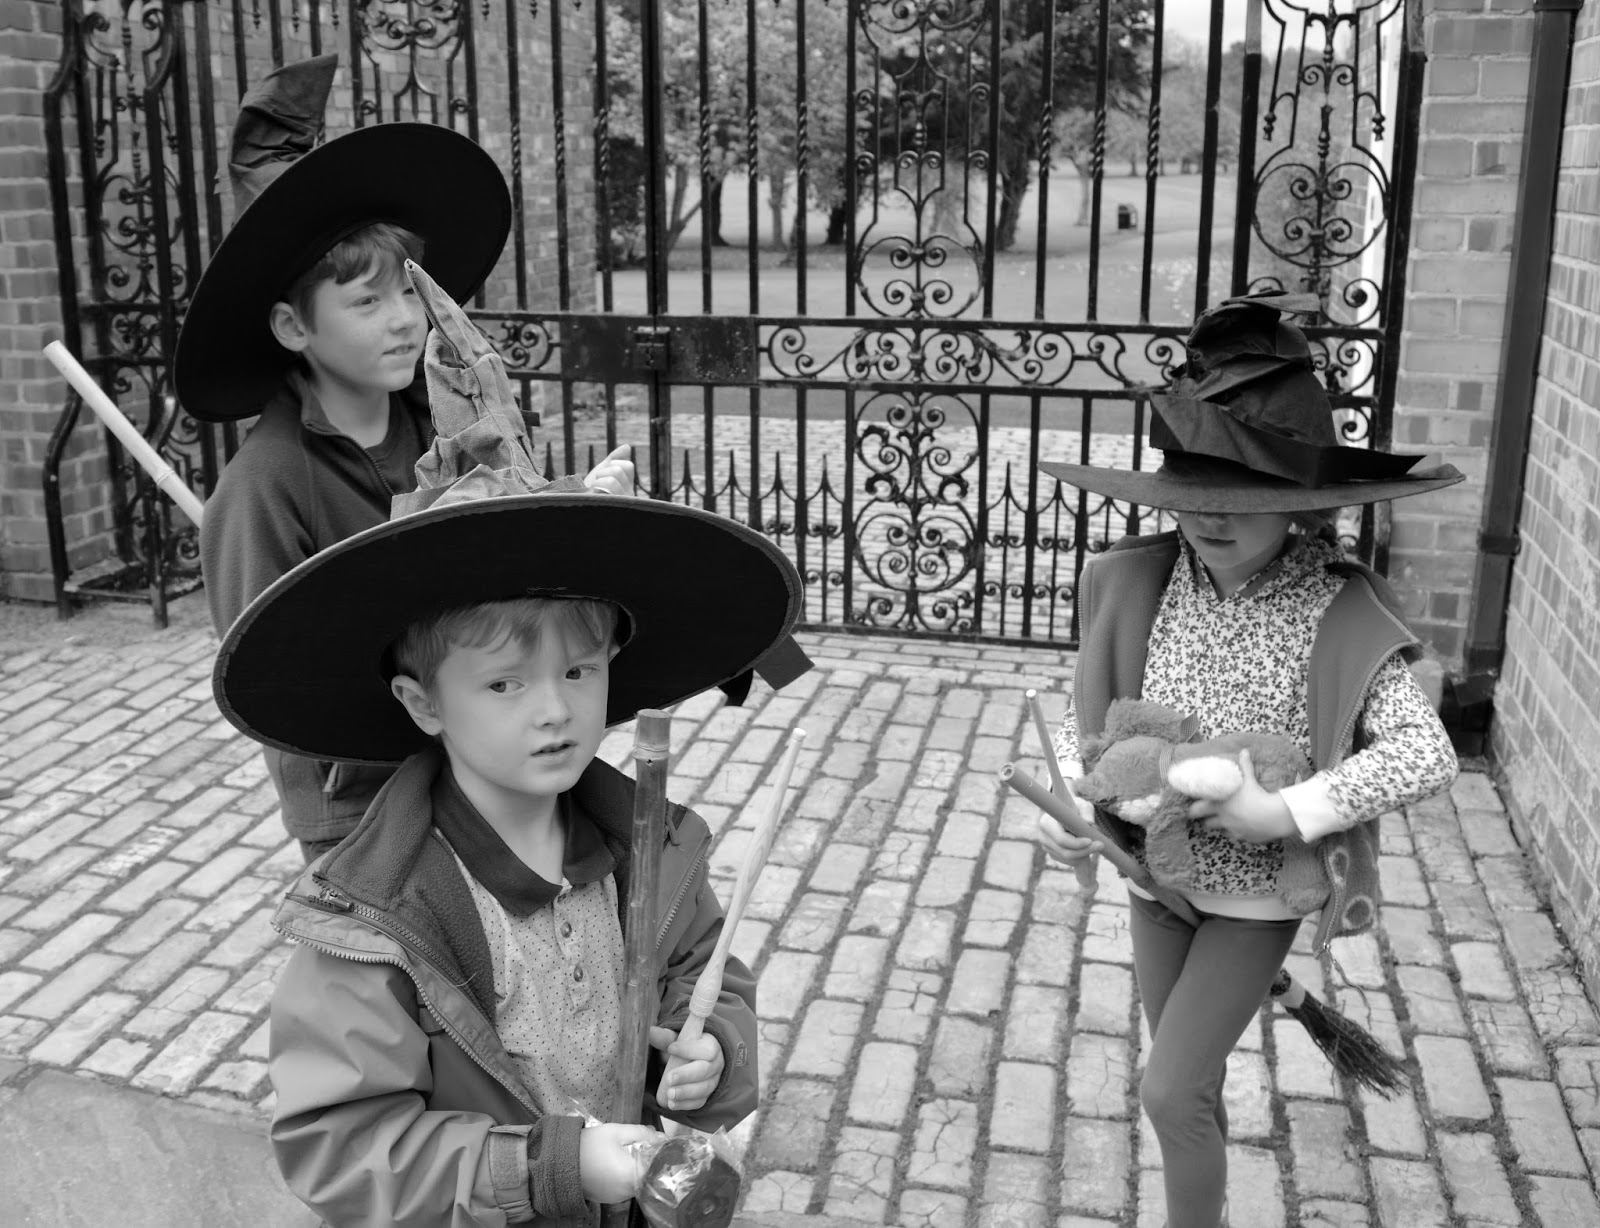 Half Term Hocus Pocus at Preston Park | The North East's very own Diagon Alley - witches in Diagon Alley